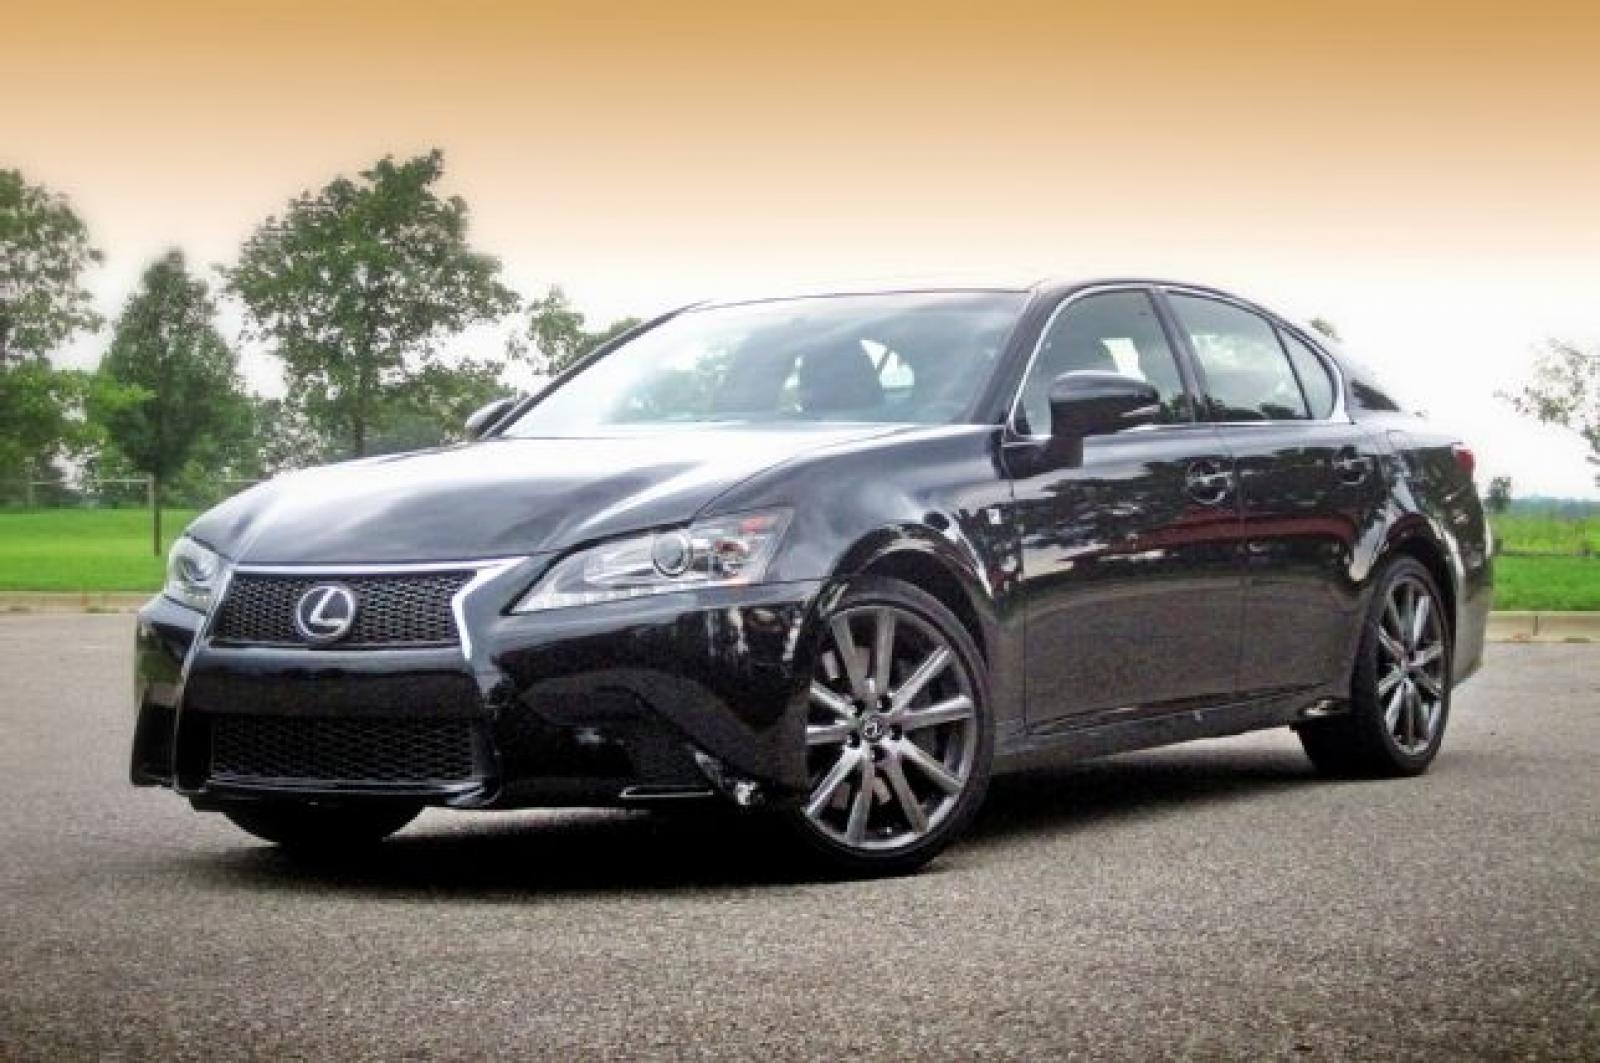 2015 lexus gs 350 information and photos zombiedrive. Black Bedroom Furniture Sets. Home Design Ideas